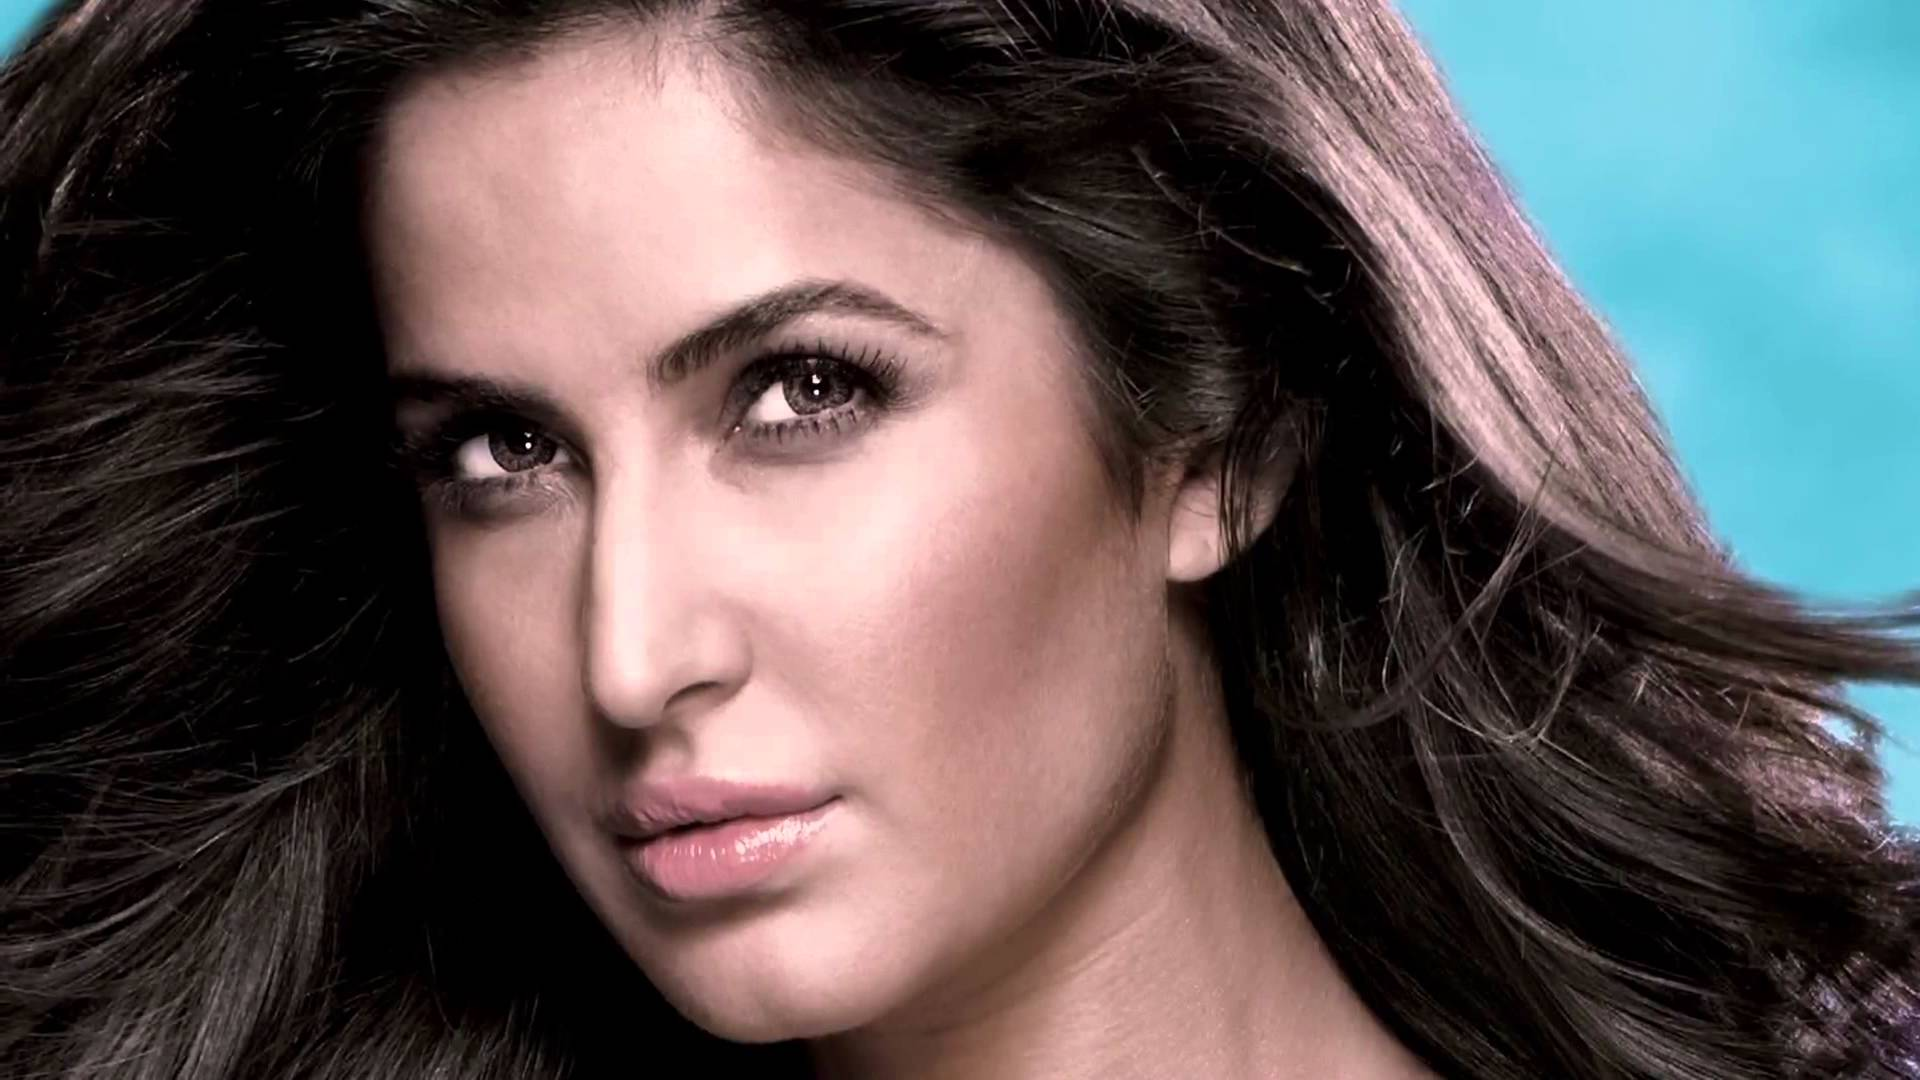 Katrina Kaif Hd Wallpapers 1080p 2016 Wallpaper Cave